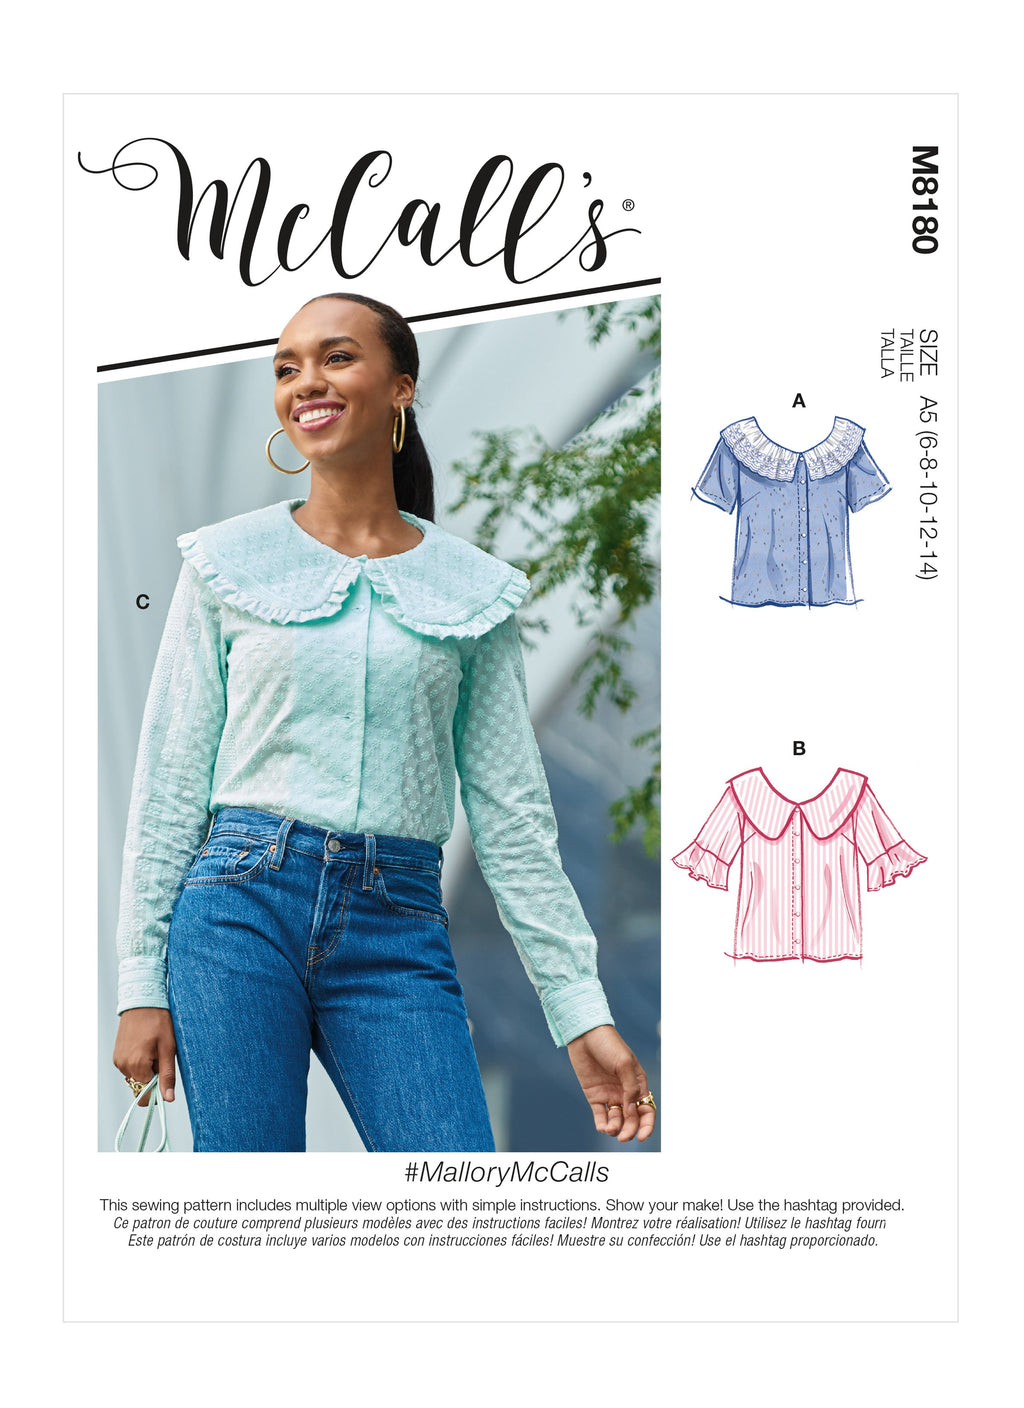 McCalls Sewing Pattern 8180 Misses' Tops from Jaycotts Sewing Supplies